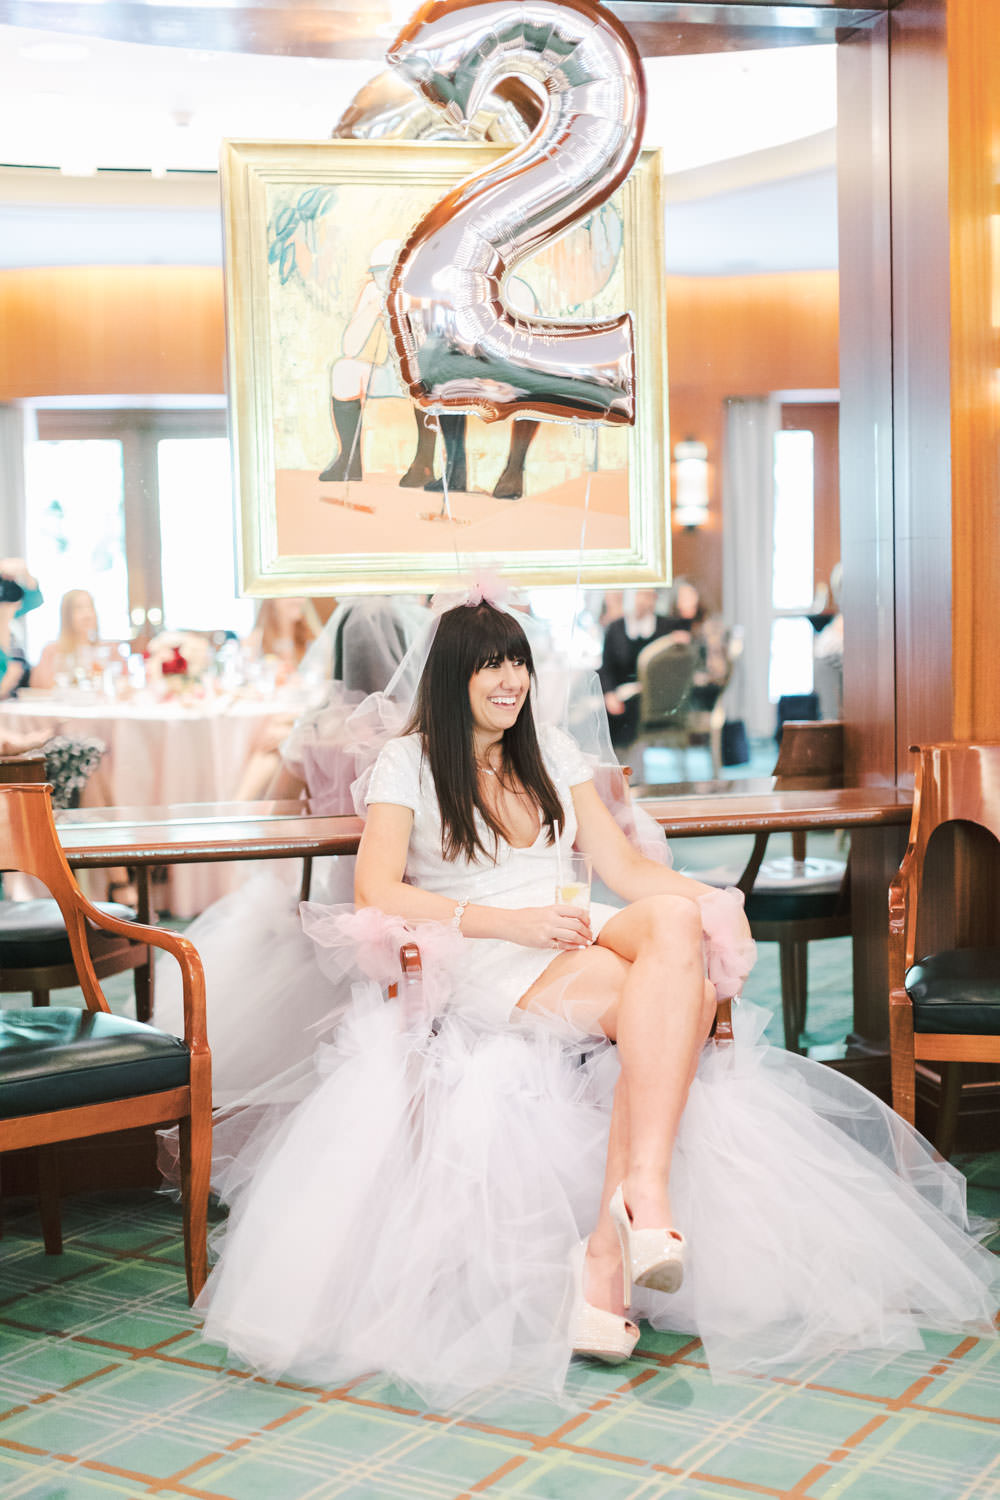 Bride in tulle chair at Chic Beverly Hills Hotel Bridal Shower during Christmas time, Cavin Elizabeth Photography